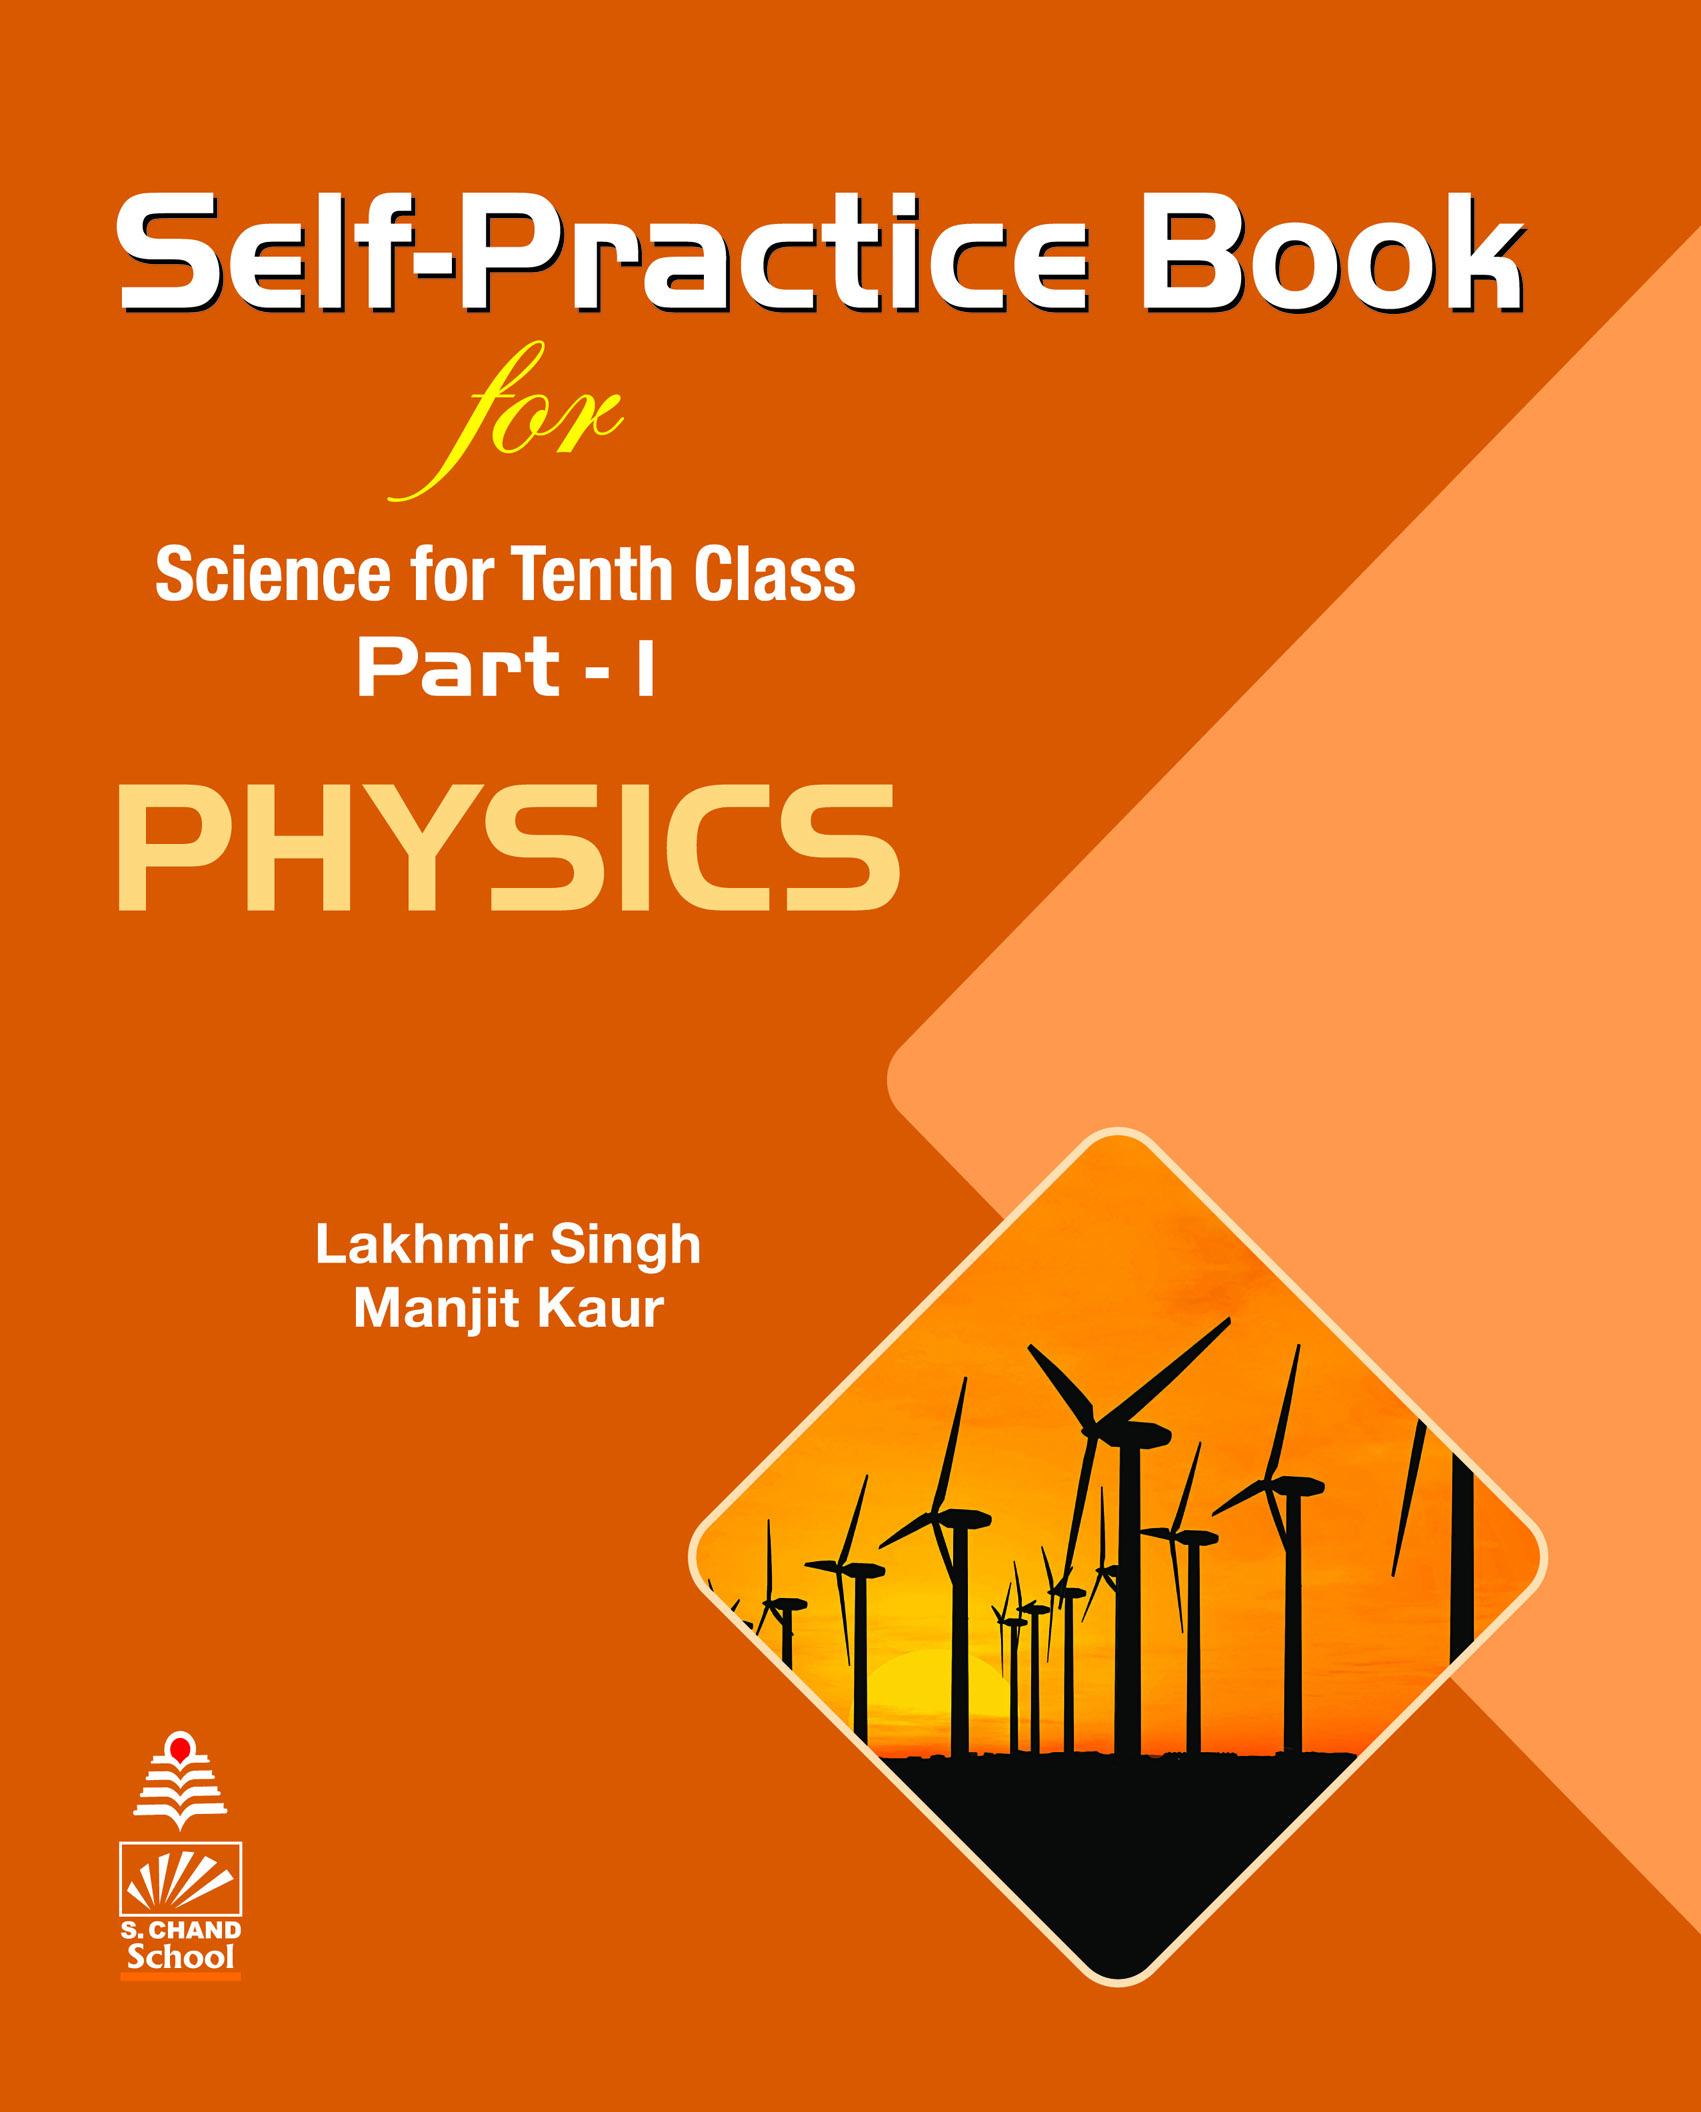 Self-Practice Book for Science for Tenth Class Part - 1 PHYSICS